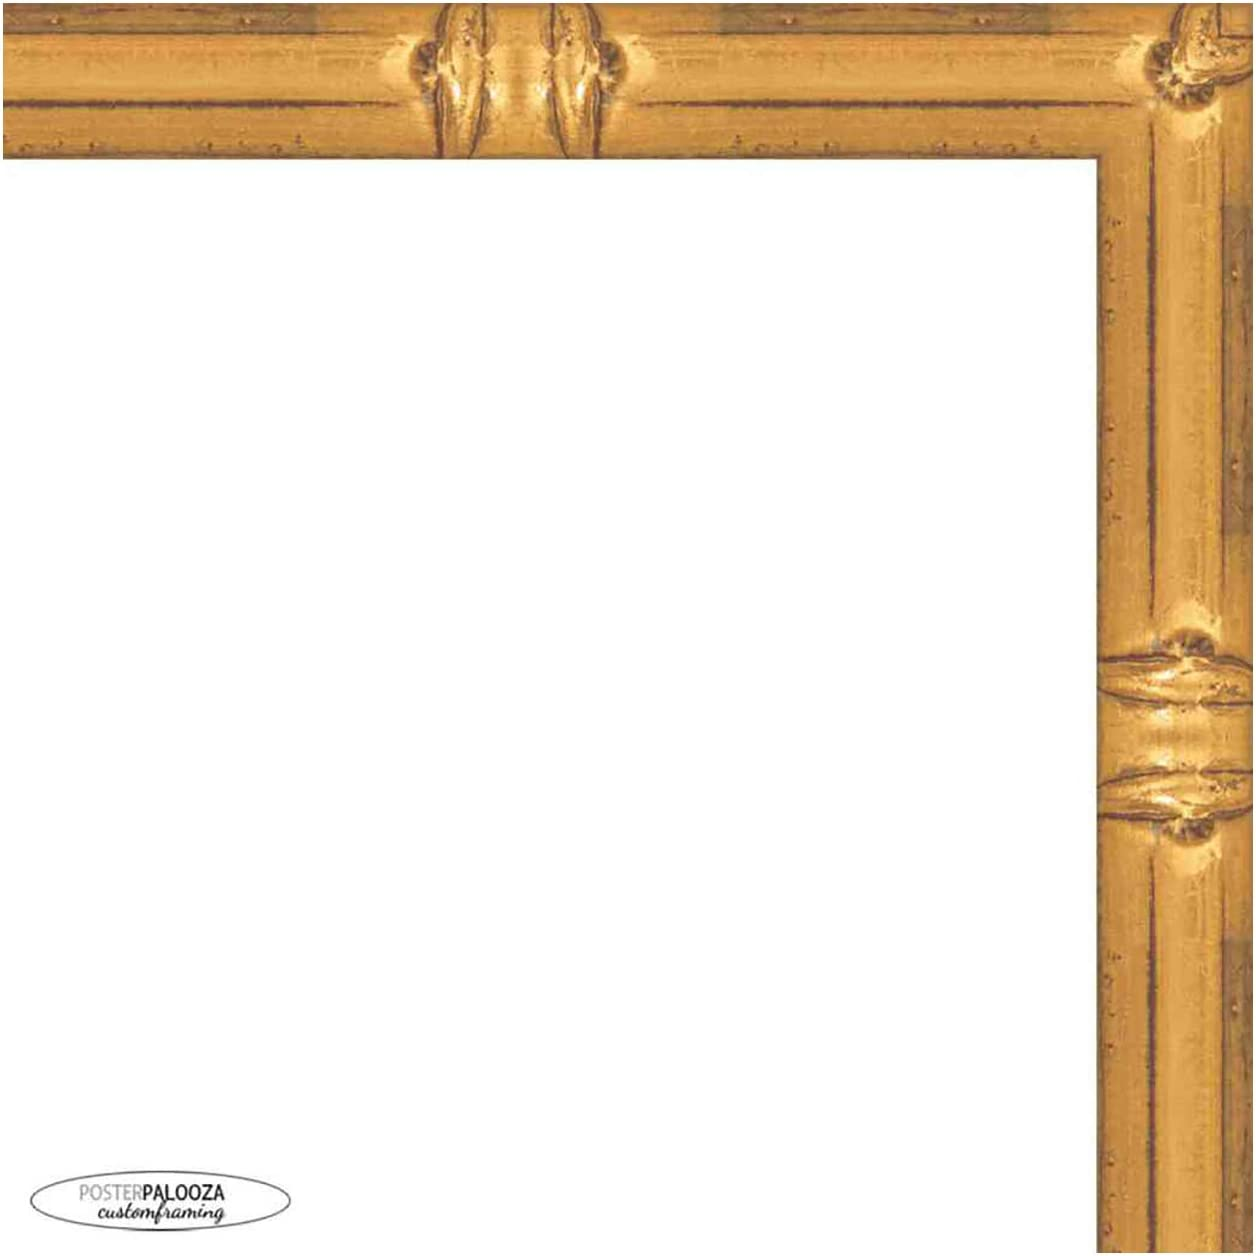 Poster Palooza 28x18 Bamboo Gold wit Complete Over item handling ☆ Wood Latest item Frame Picture